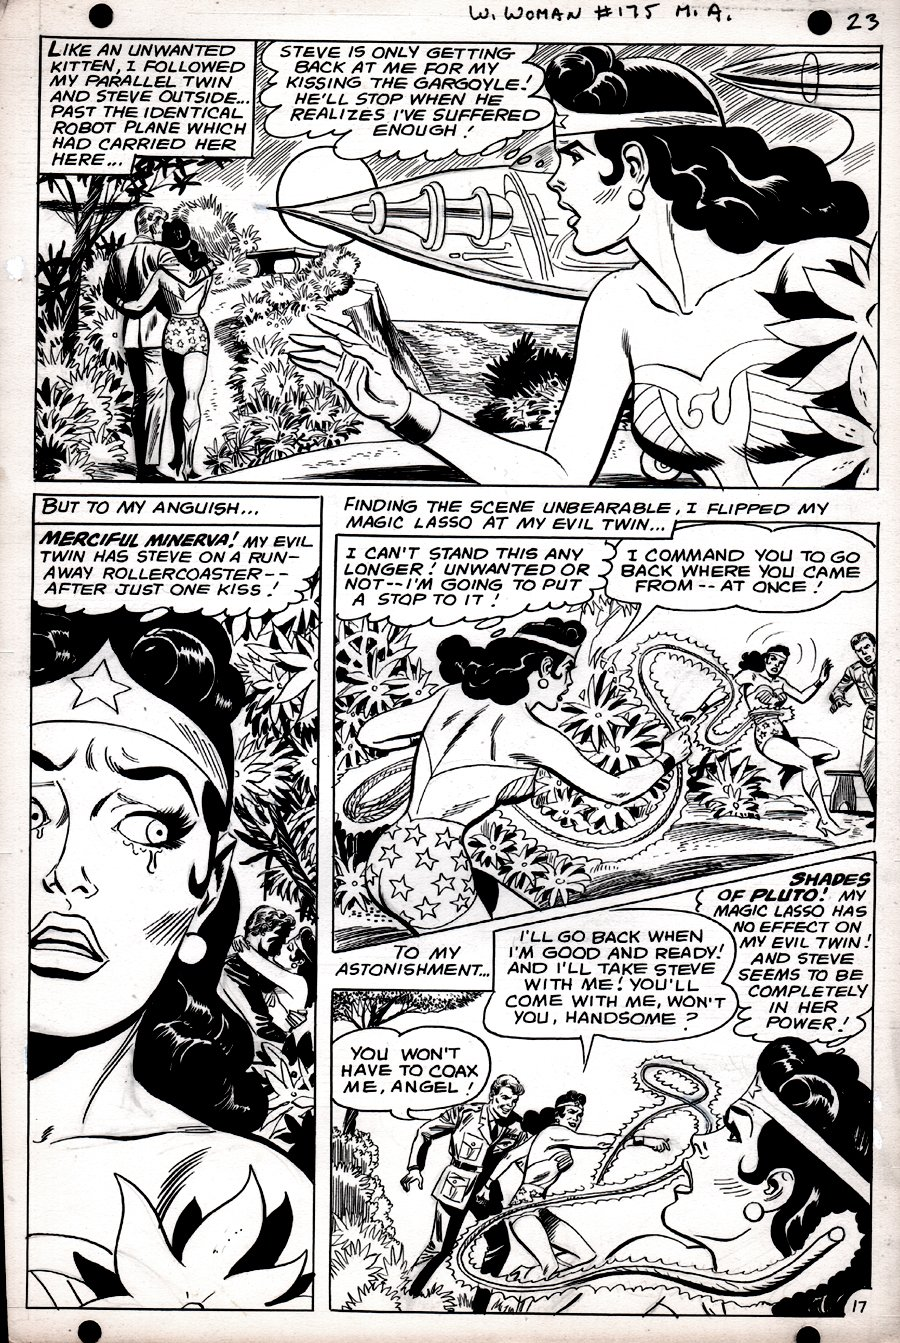 Wonder Woman #175 p 17 (SILVER AGE, WONDER WOMAN BATTLES WONDER WOMAN!) 1967